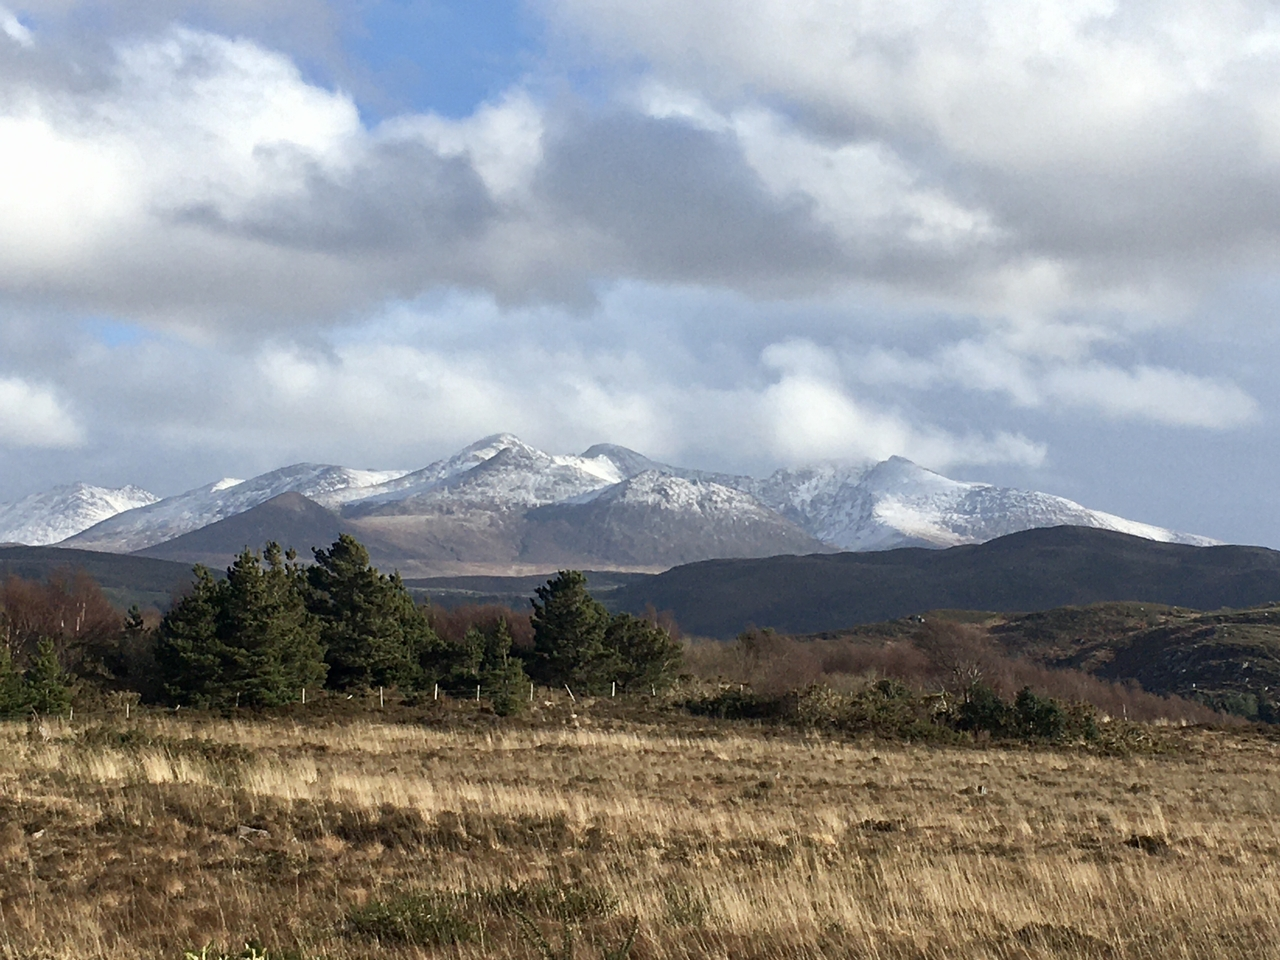 The snow capped Kerry Mountains